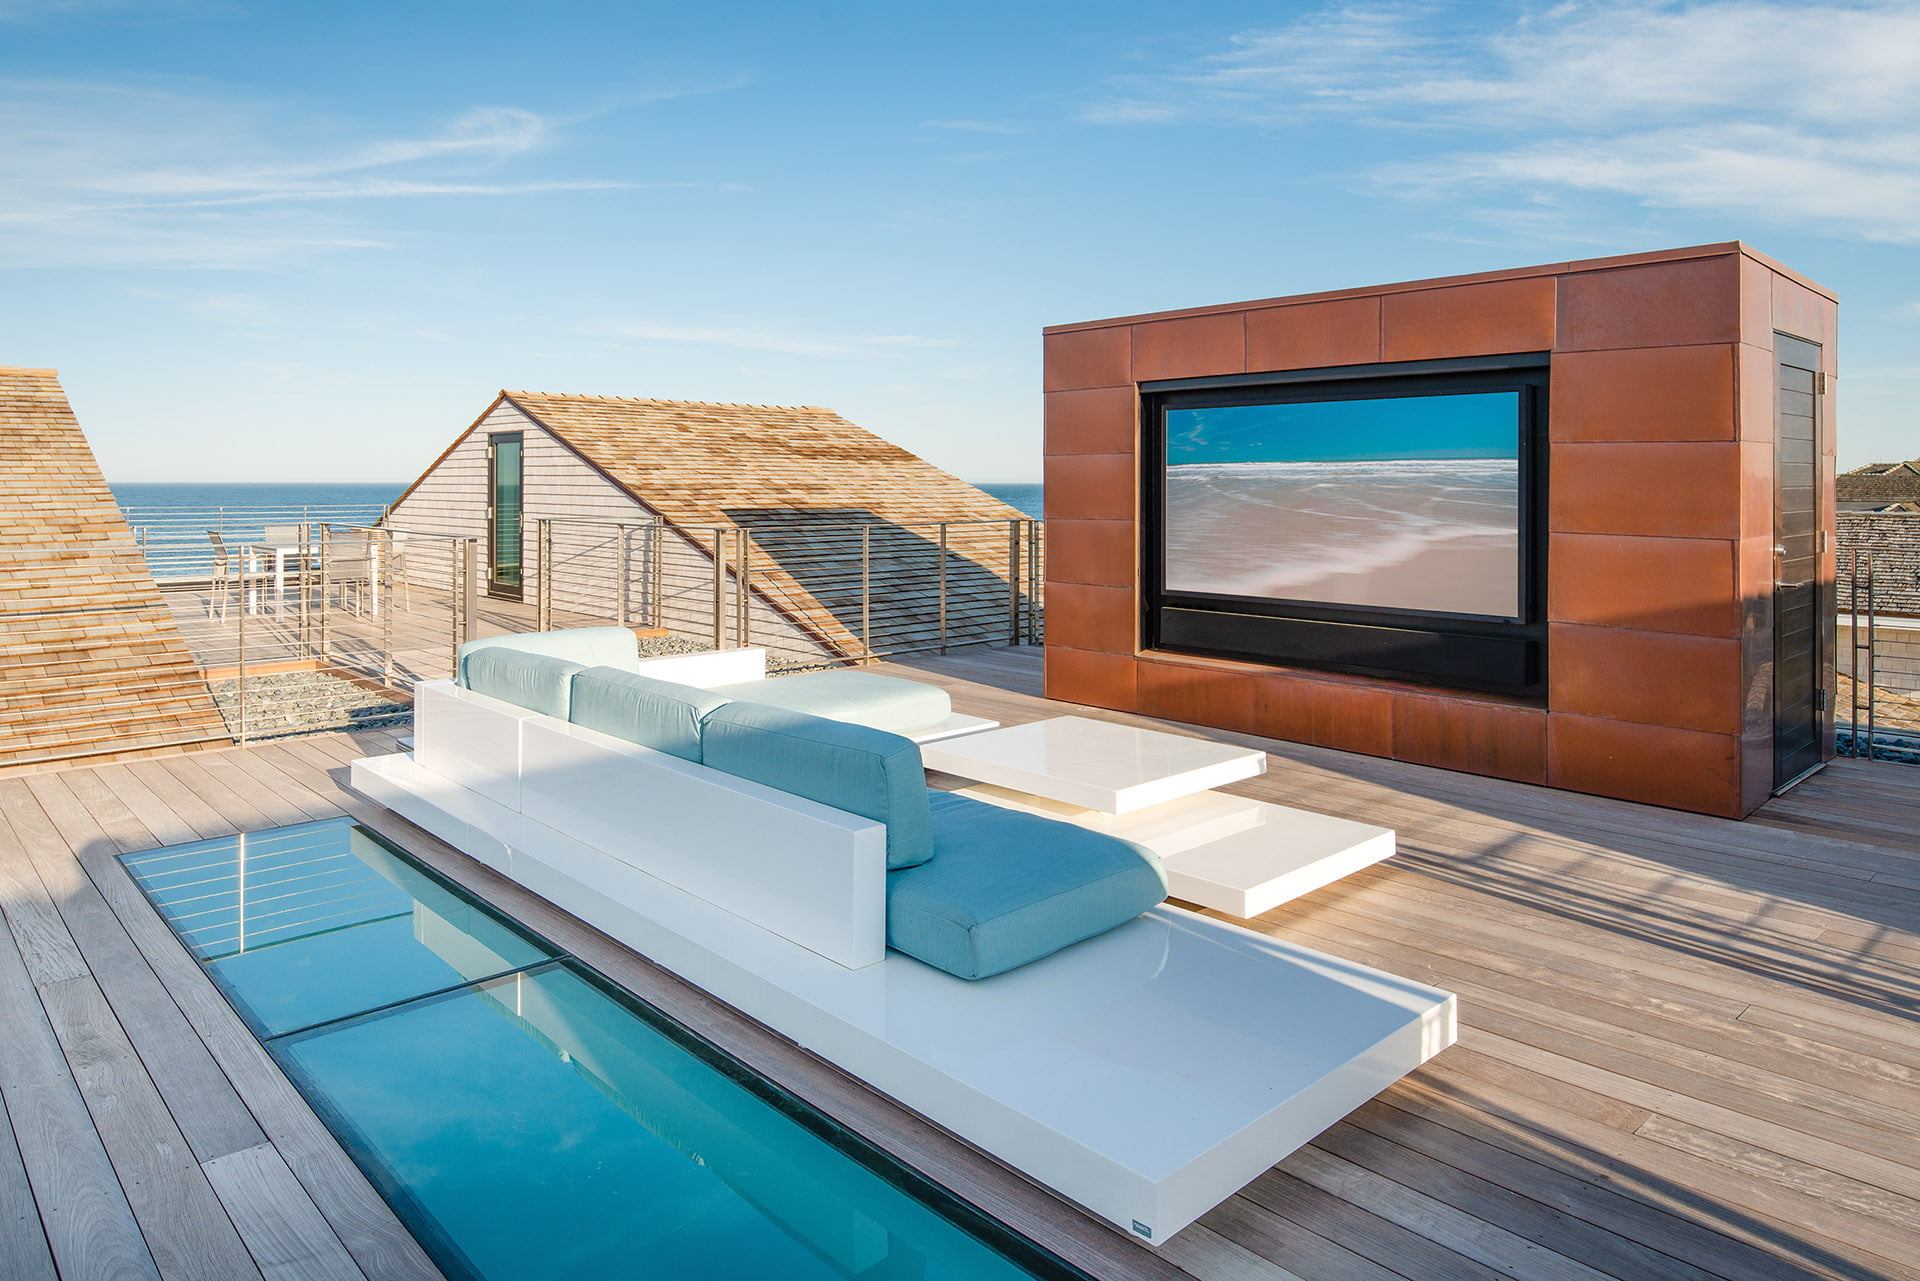 Platform sofa by Rausch Furniture and an outdoor TV on roof deck